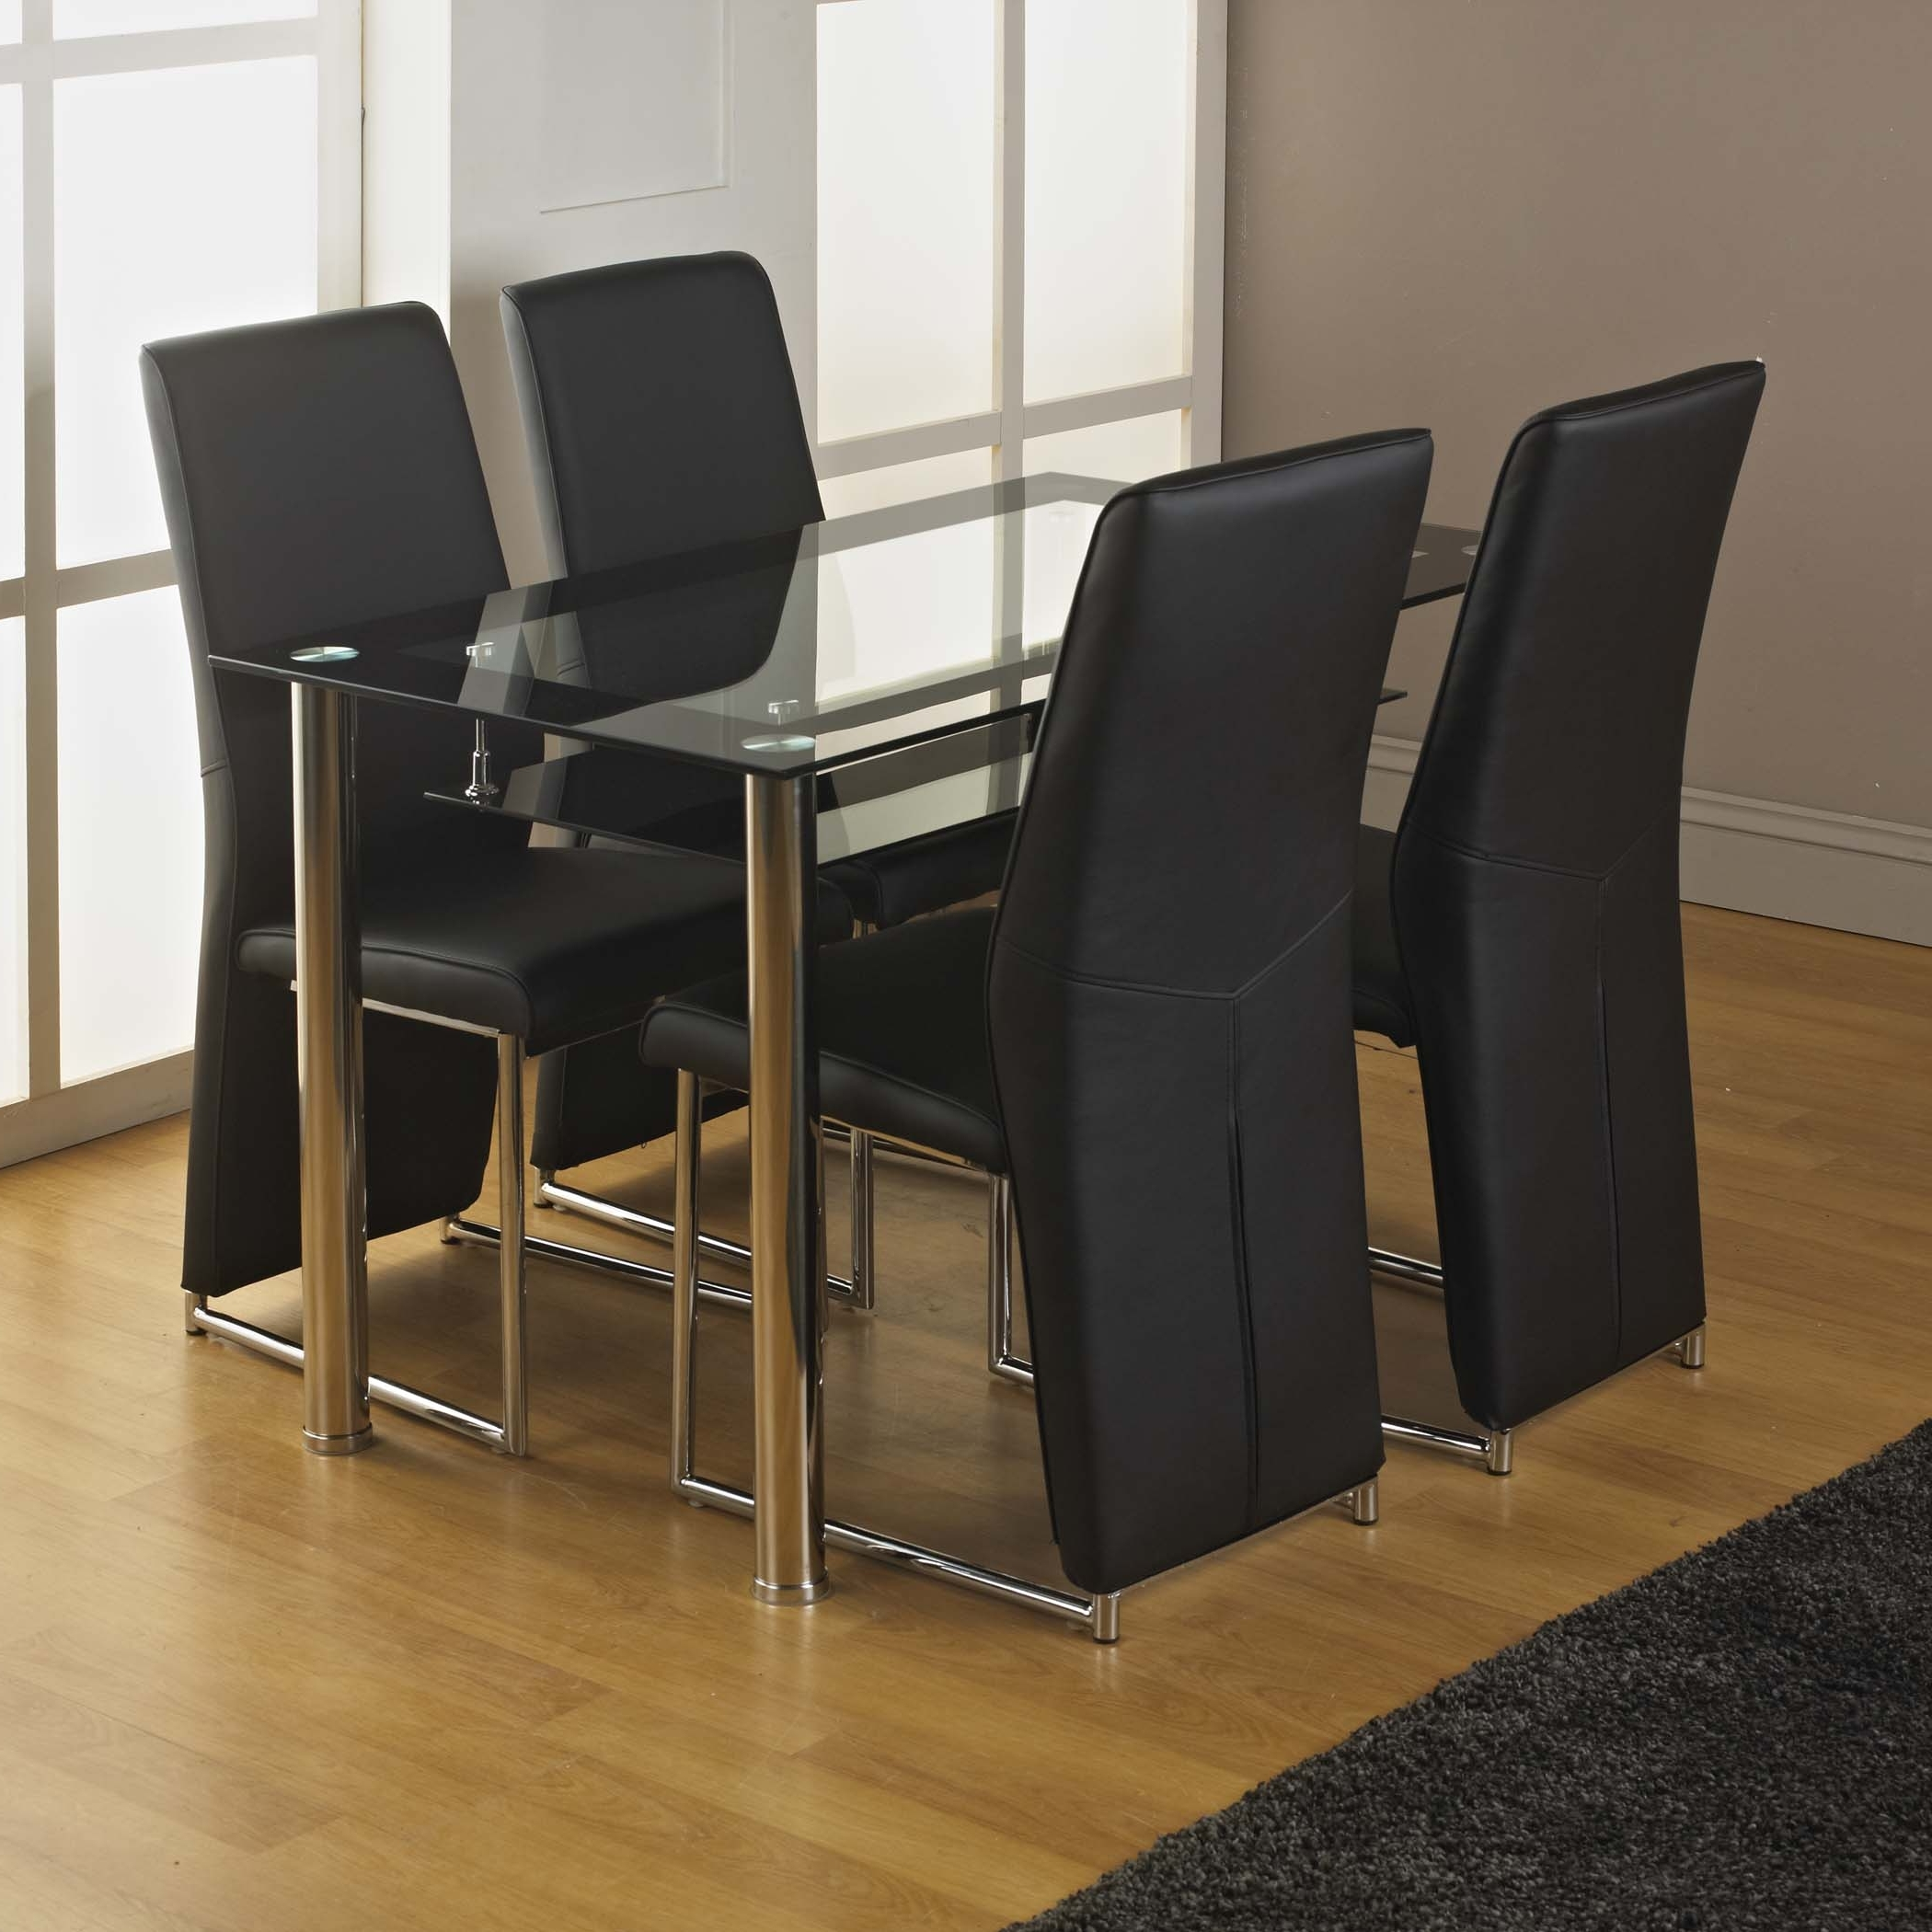 Best And Newest Kingston Dining Tables And Chairs Regarding Kingston Tempered Glass Dining Table And Four Chairs – Choice Of (View 3 of 25)